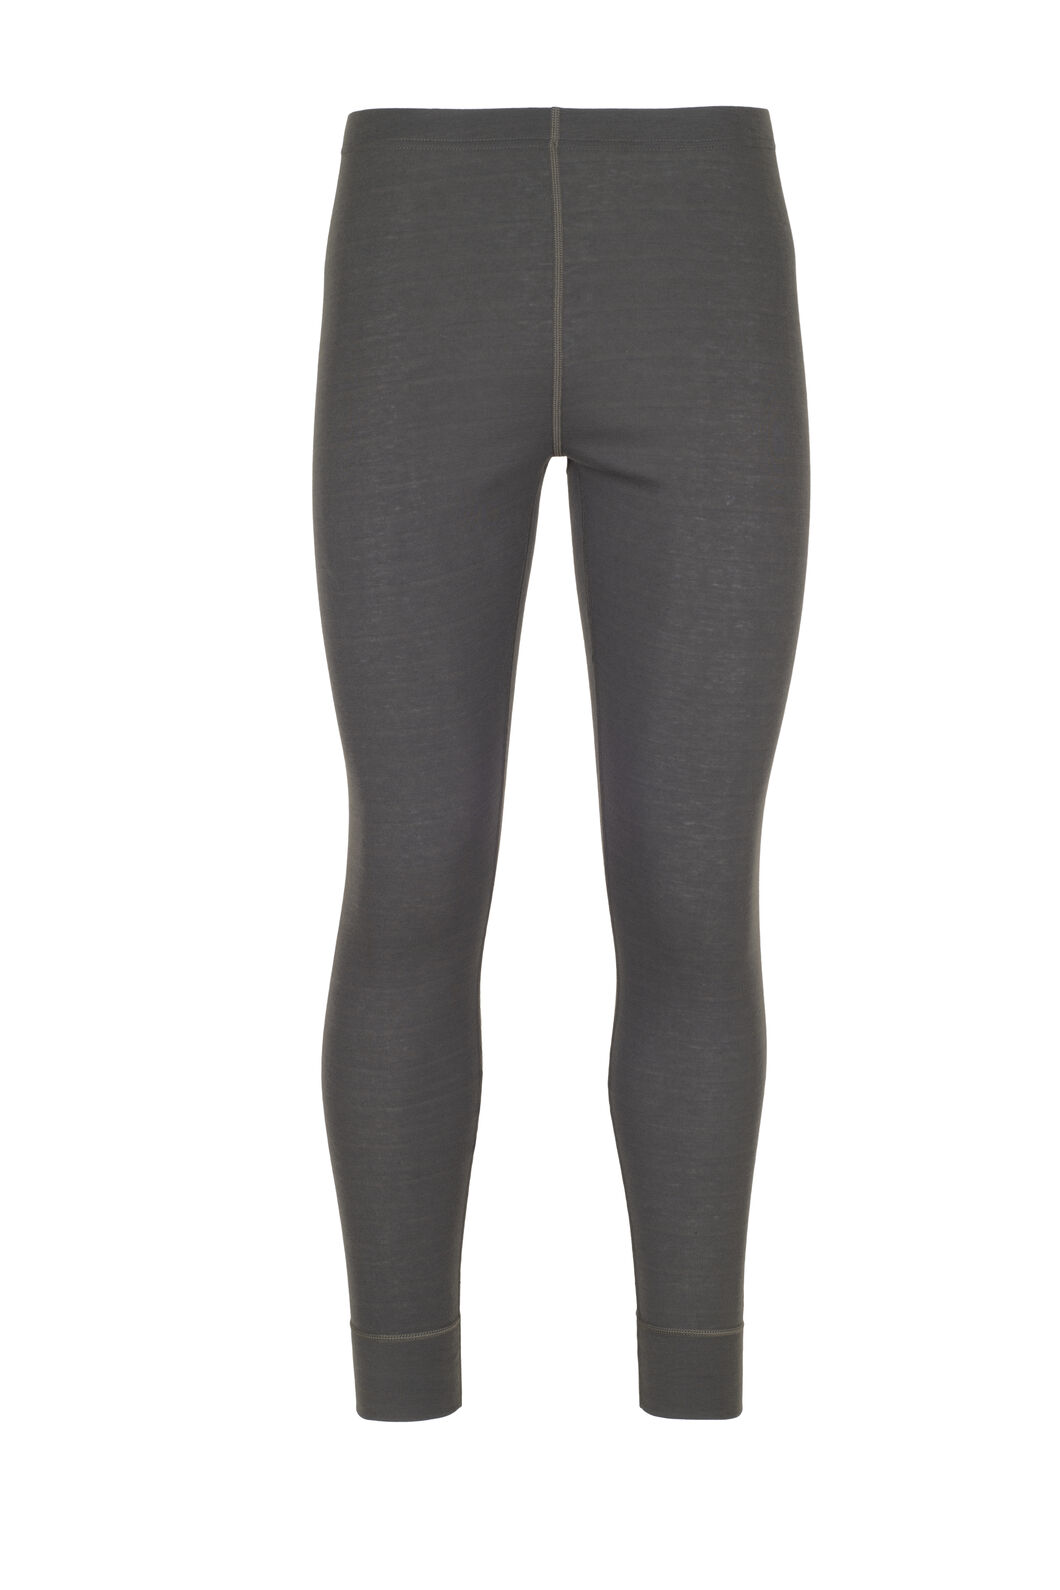 Macpac Geothermal Long Johns - Unisex, Peat, hi-res